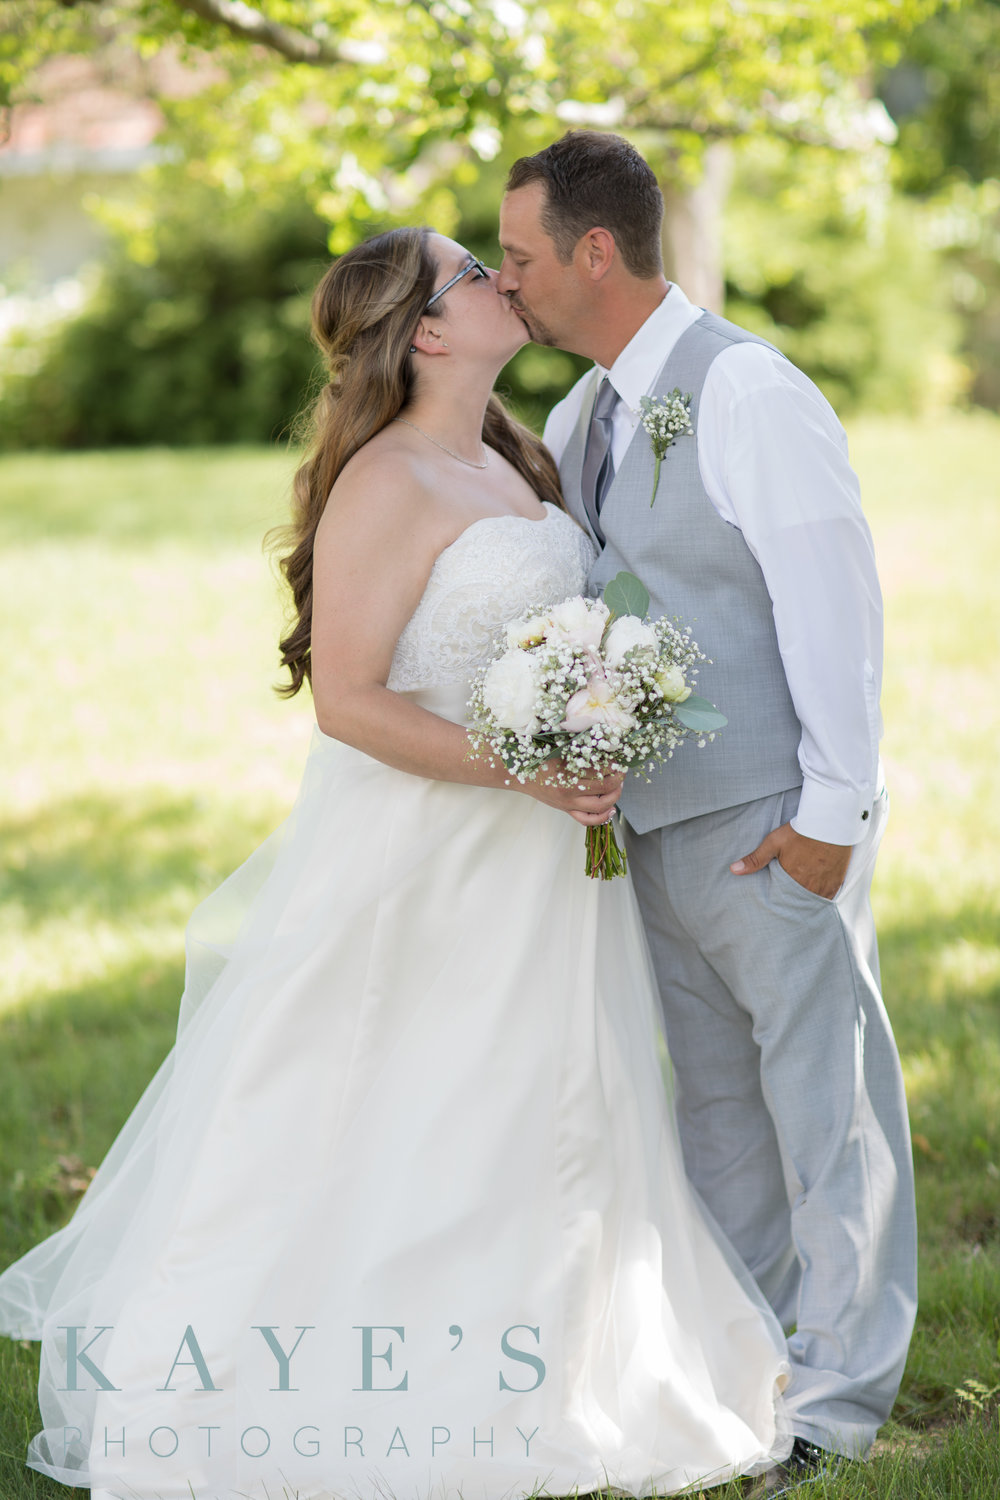 bride and groom kissing in the shade during wedding day photos in holly michigan in during their backyard wedding